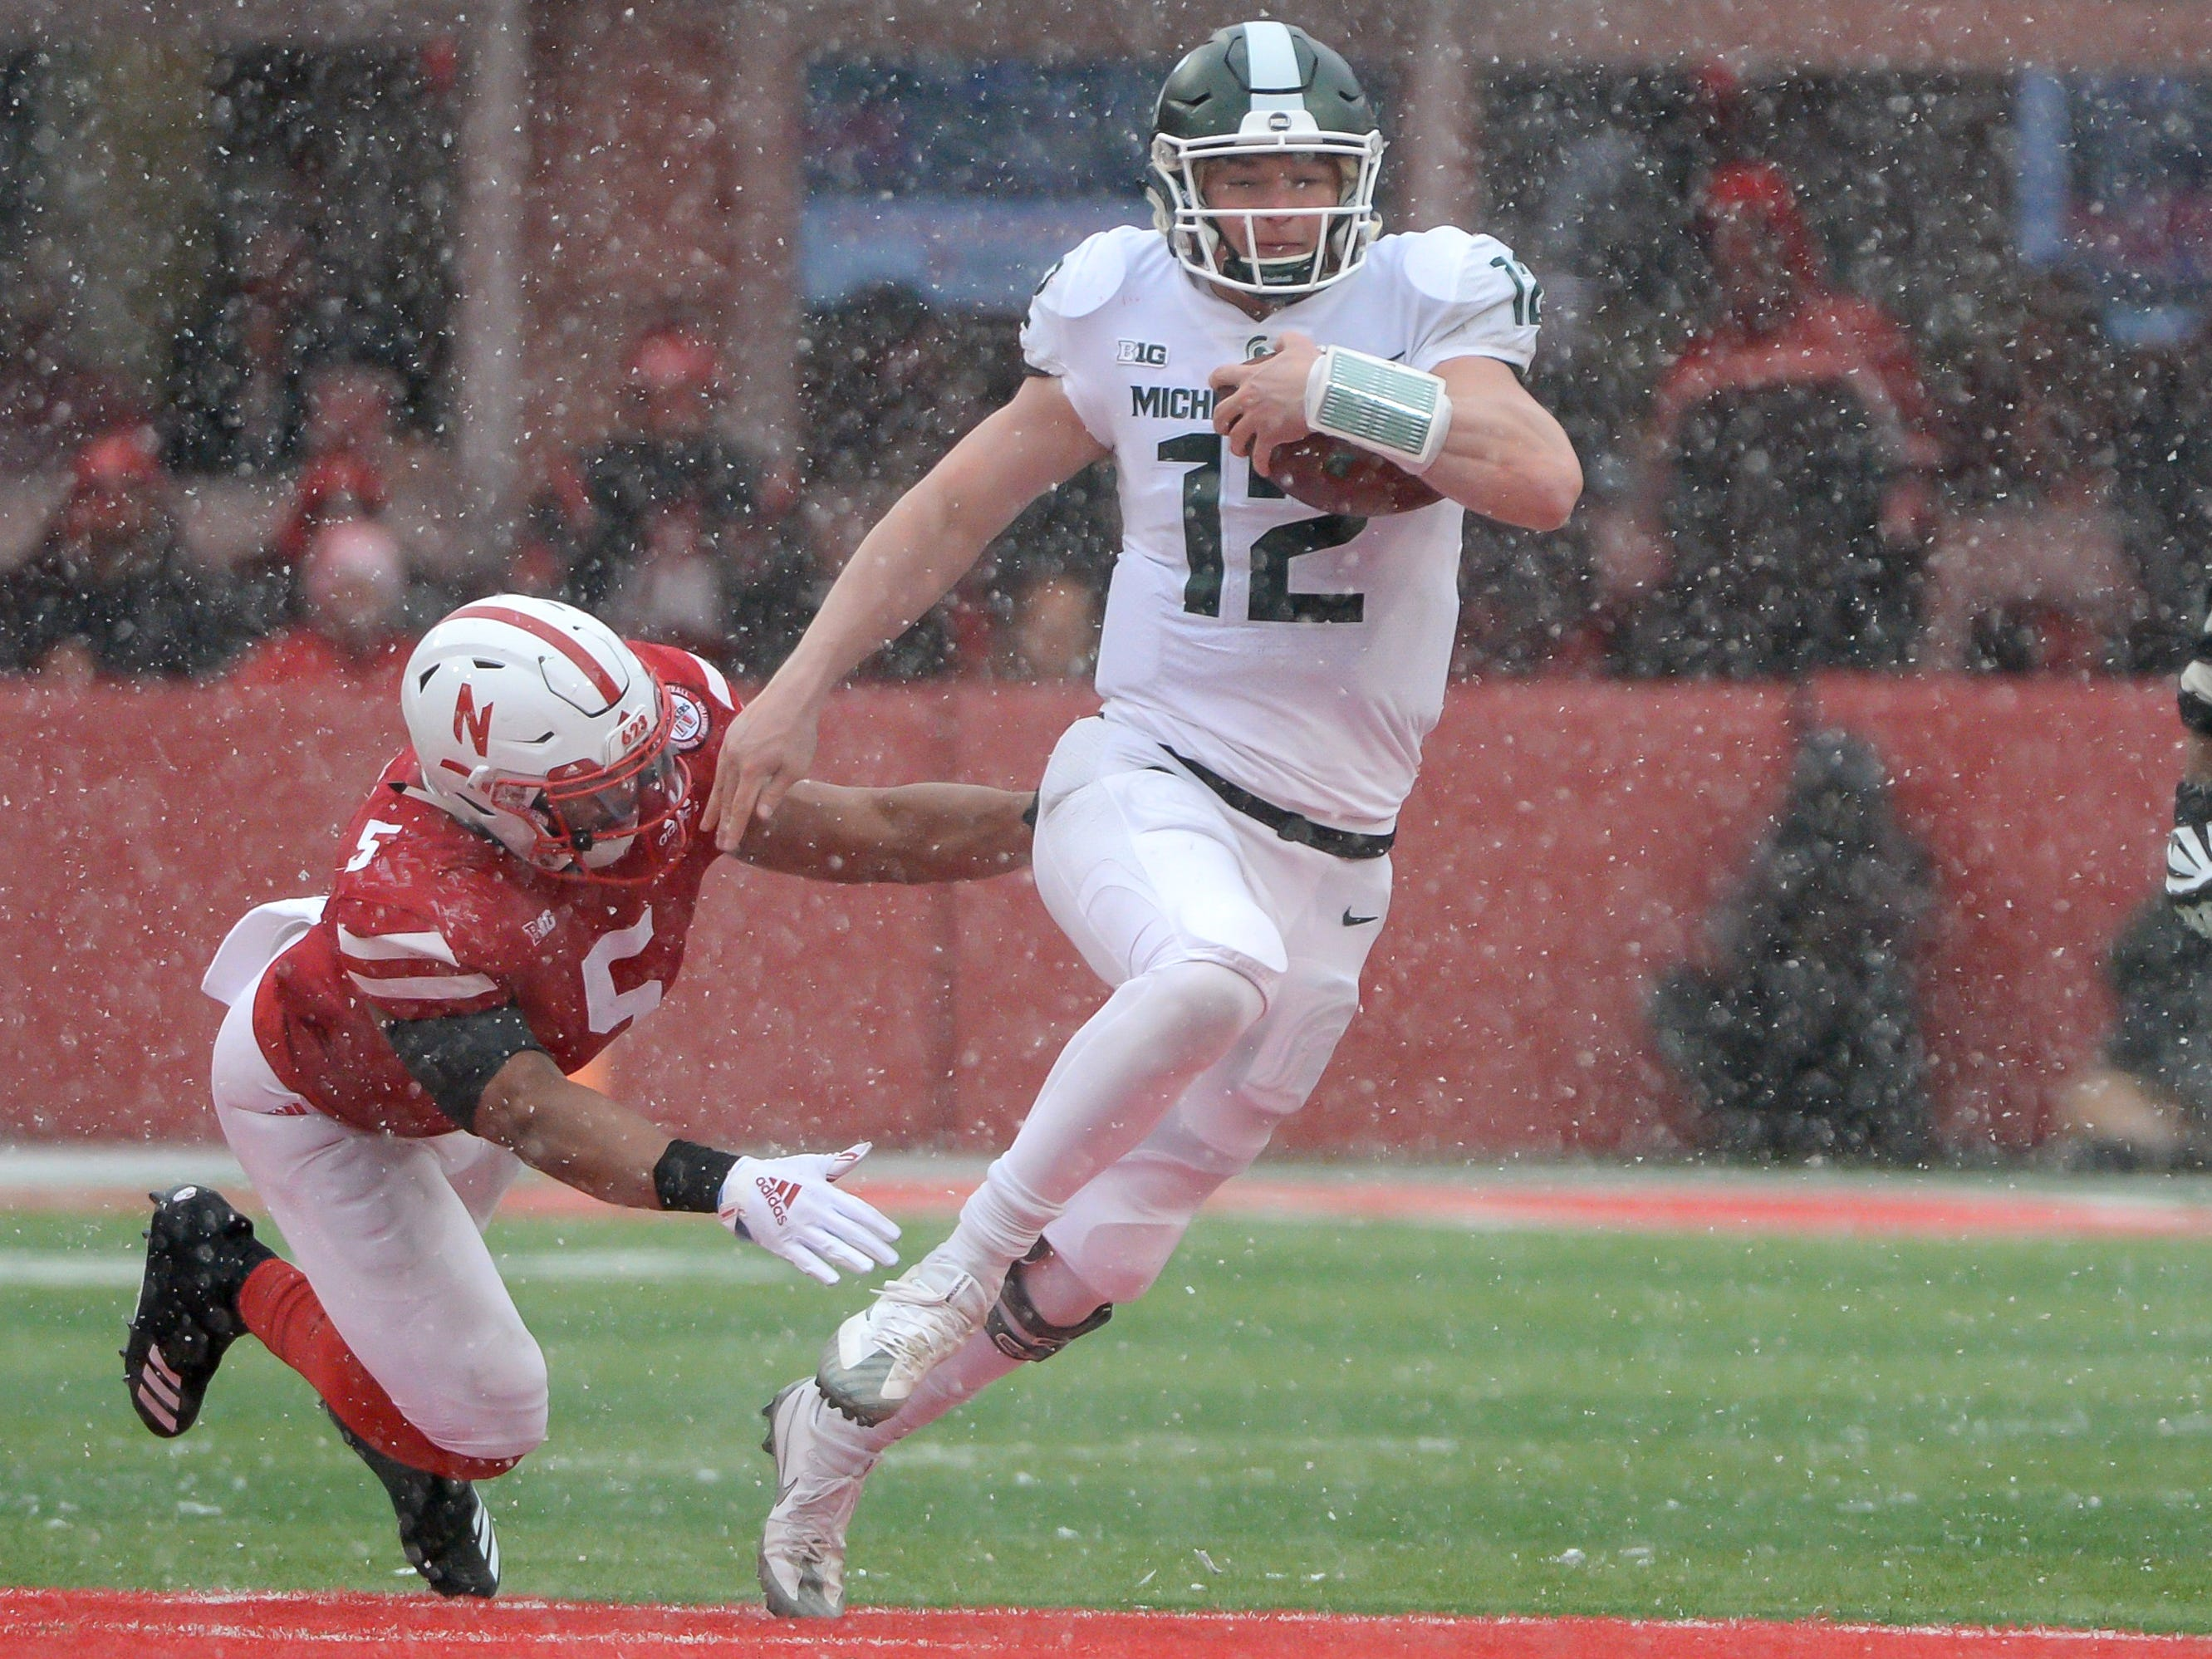 Michigan State quarterback Rocky Lombardi runs from Nebraska linebacker Dedrick Young II in the second half at Memorial Stadium on Nov. 17, 2018 in Lincoln, Neb.